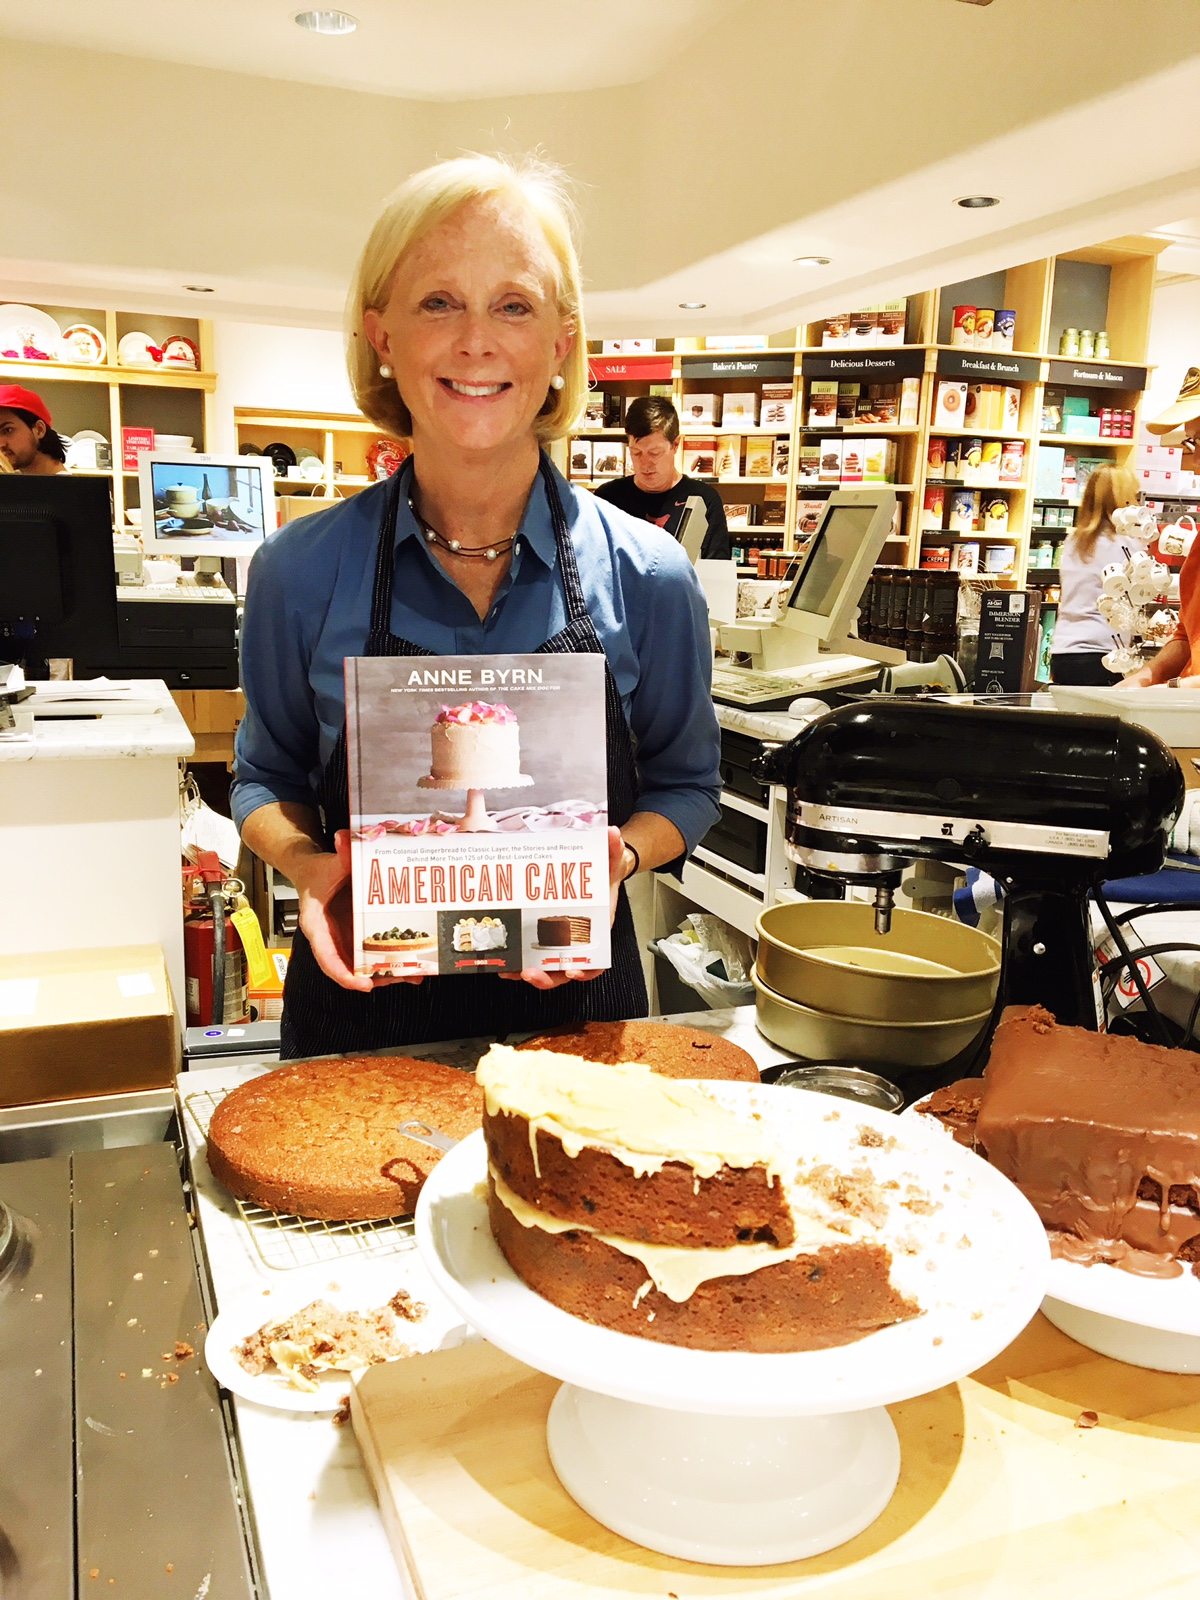 Baking cakes and signing cookbooks at Williams-Sonoma. Fall 2016